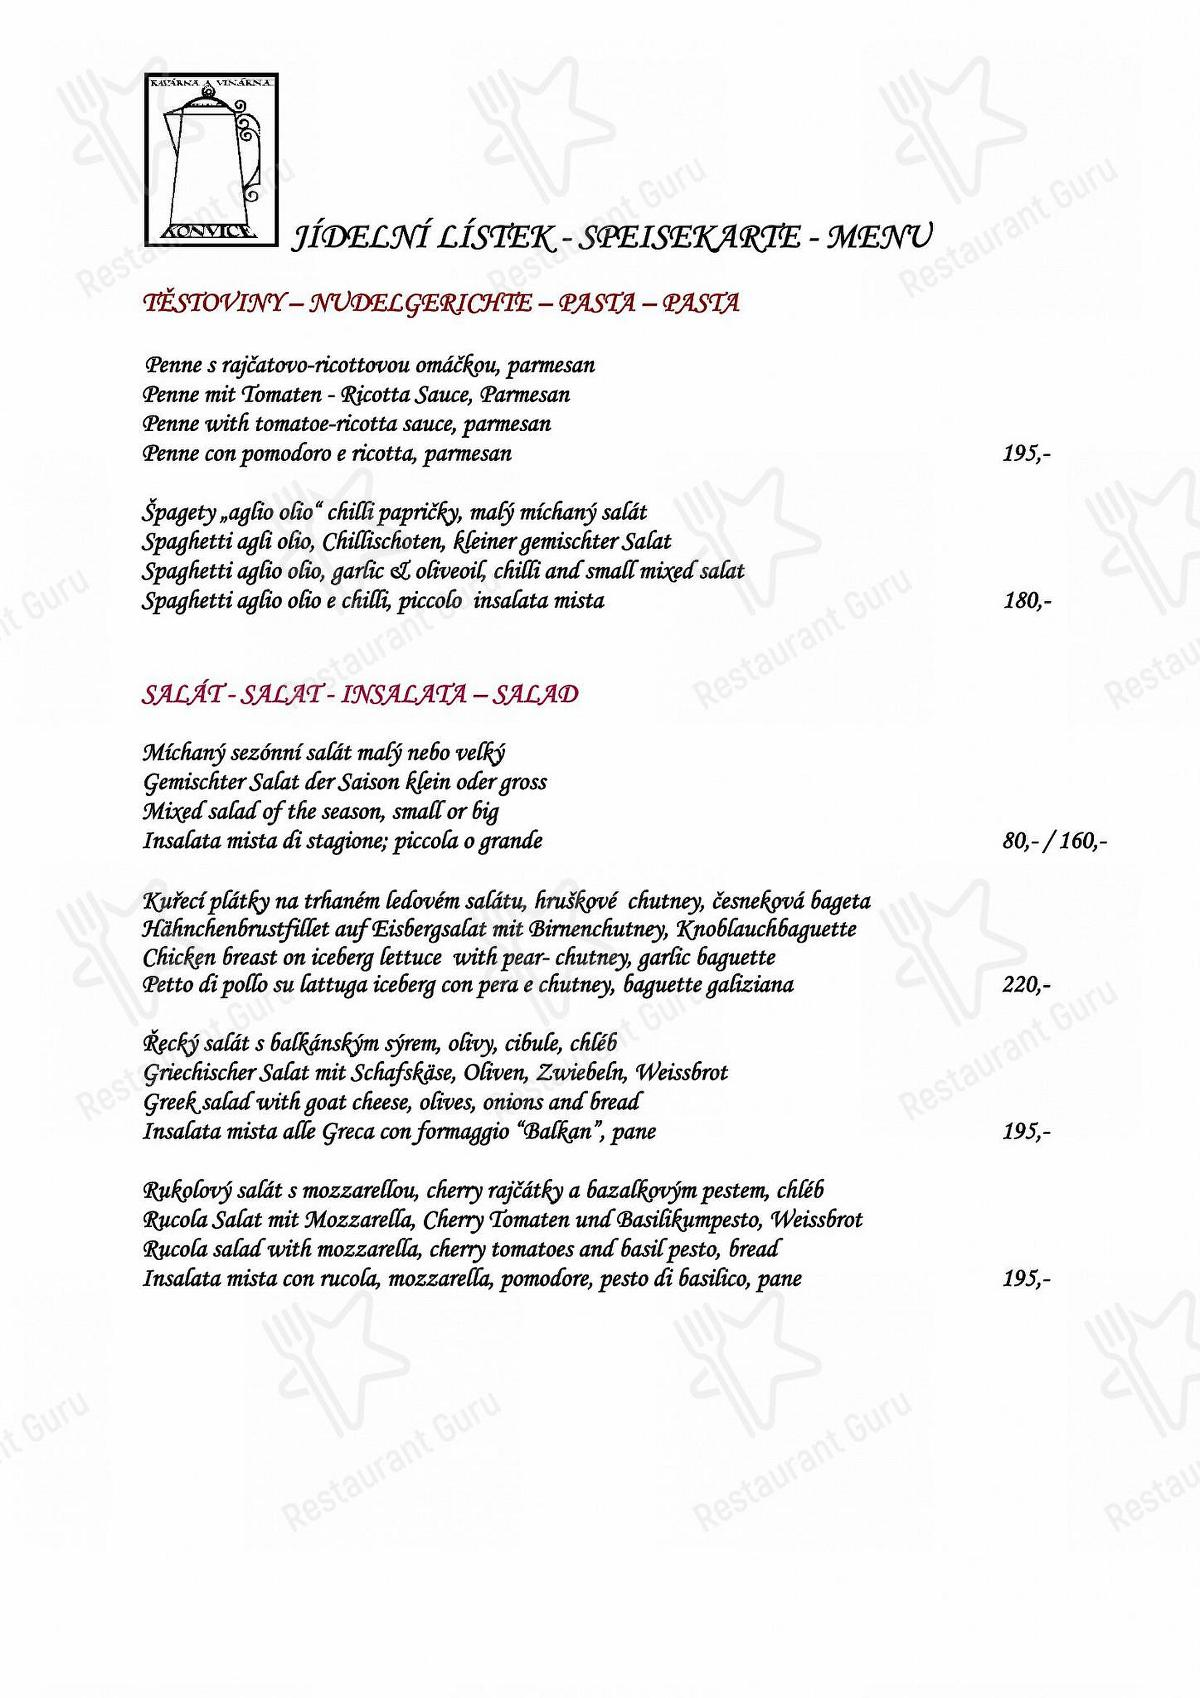 Menu for the Konvice restaurant